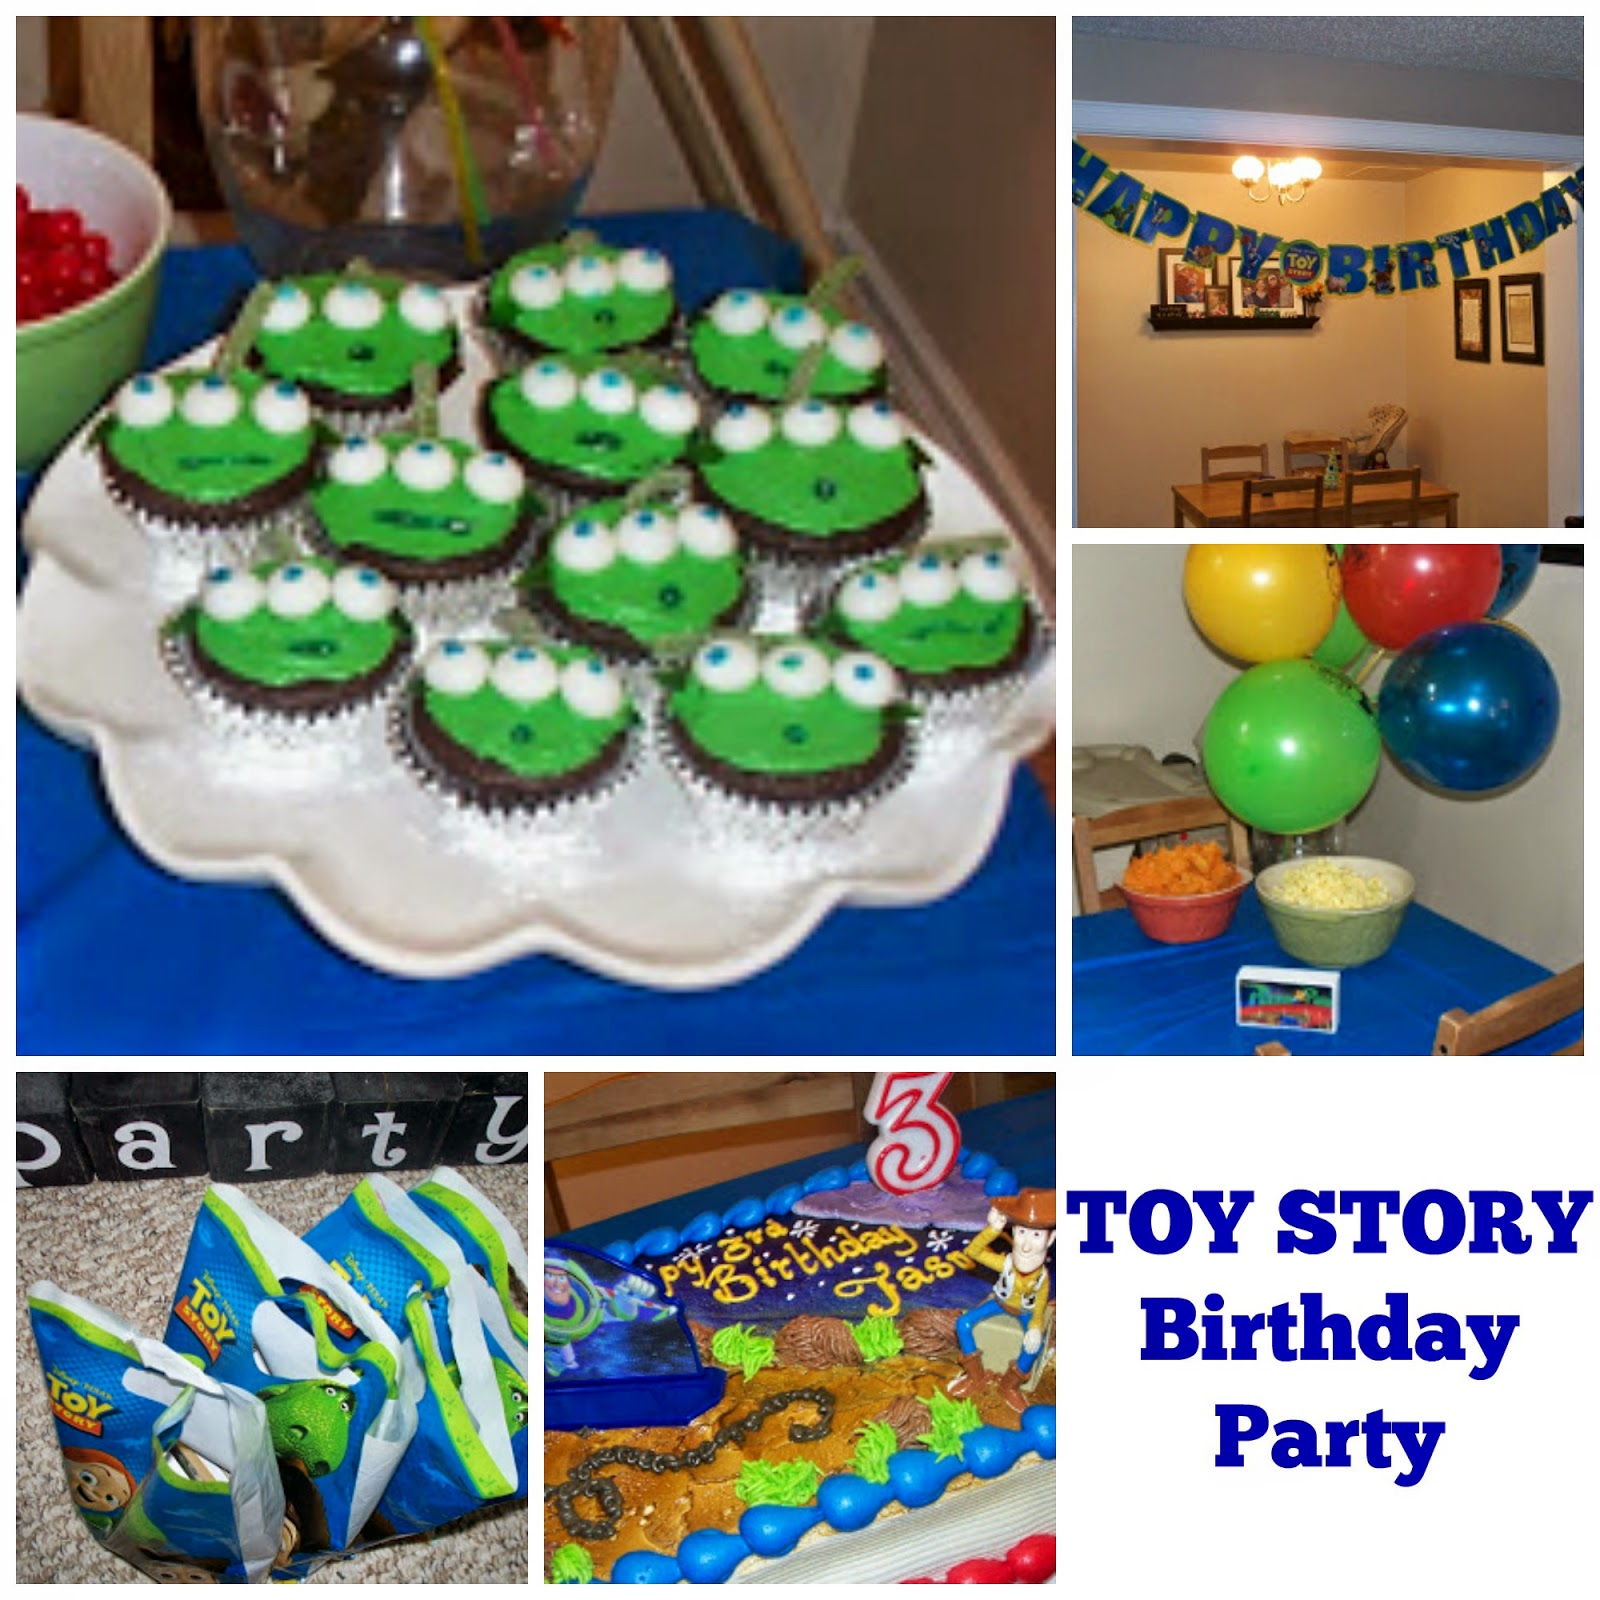 http://craftingandcreativity.blogspot.ca/2011/05/boys-3rd-birthday-party-toy-story-theme.html